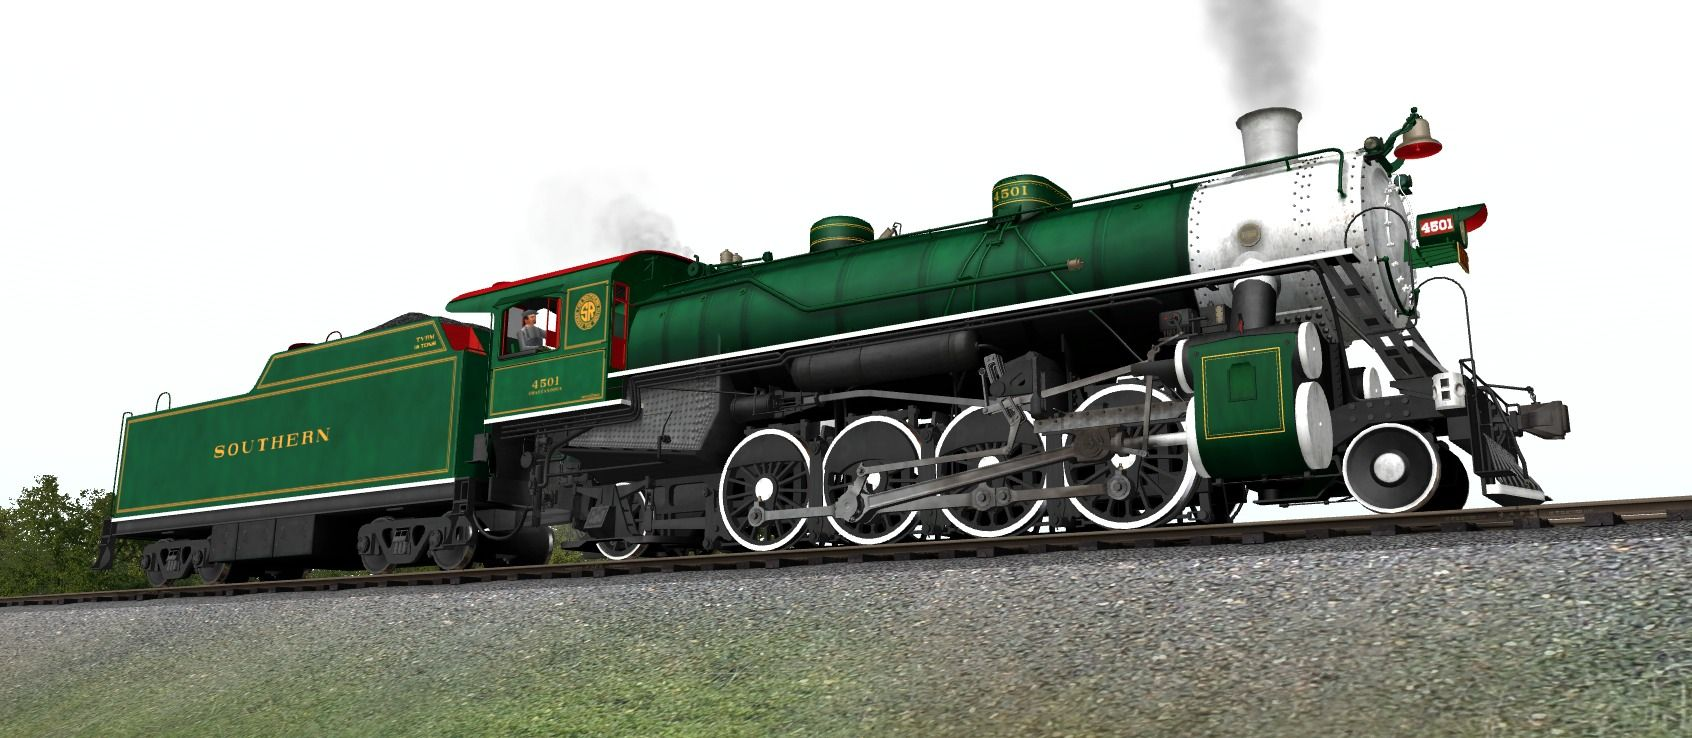 K&L Trainz Steam Locomotive pics! - Page 51 | Trainz Simulator Fever